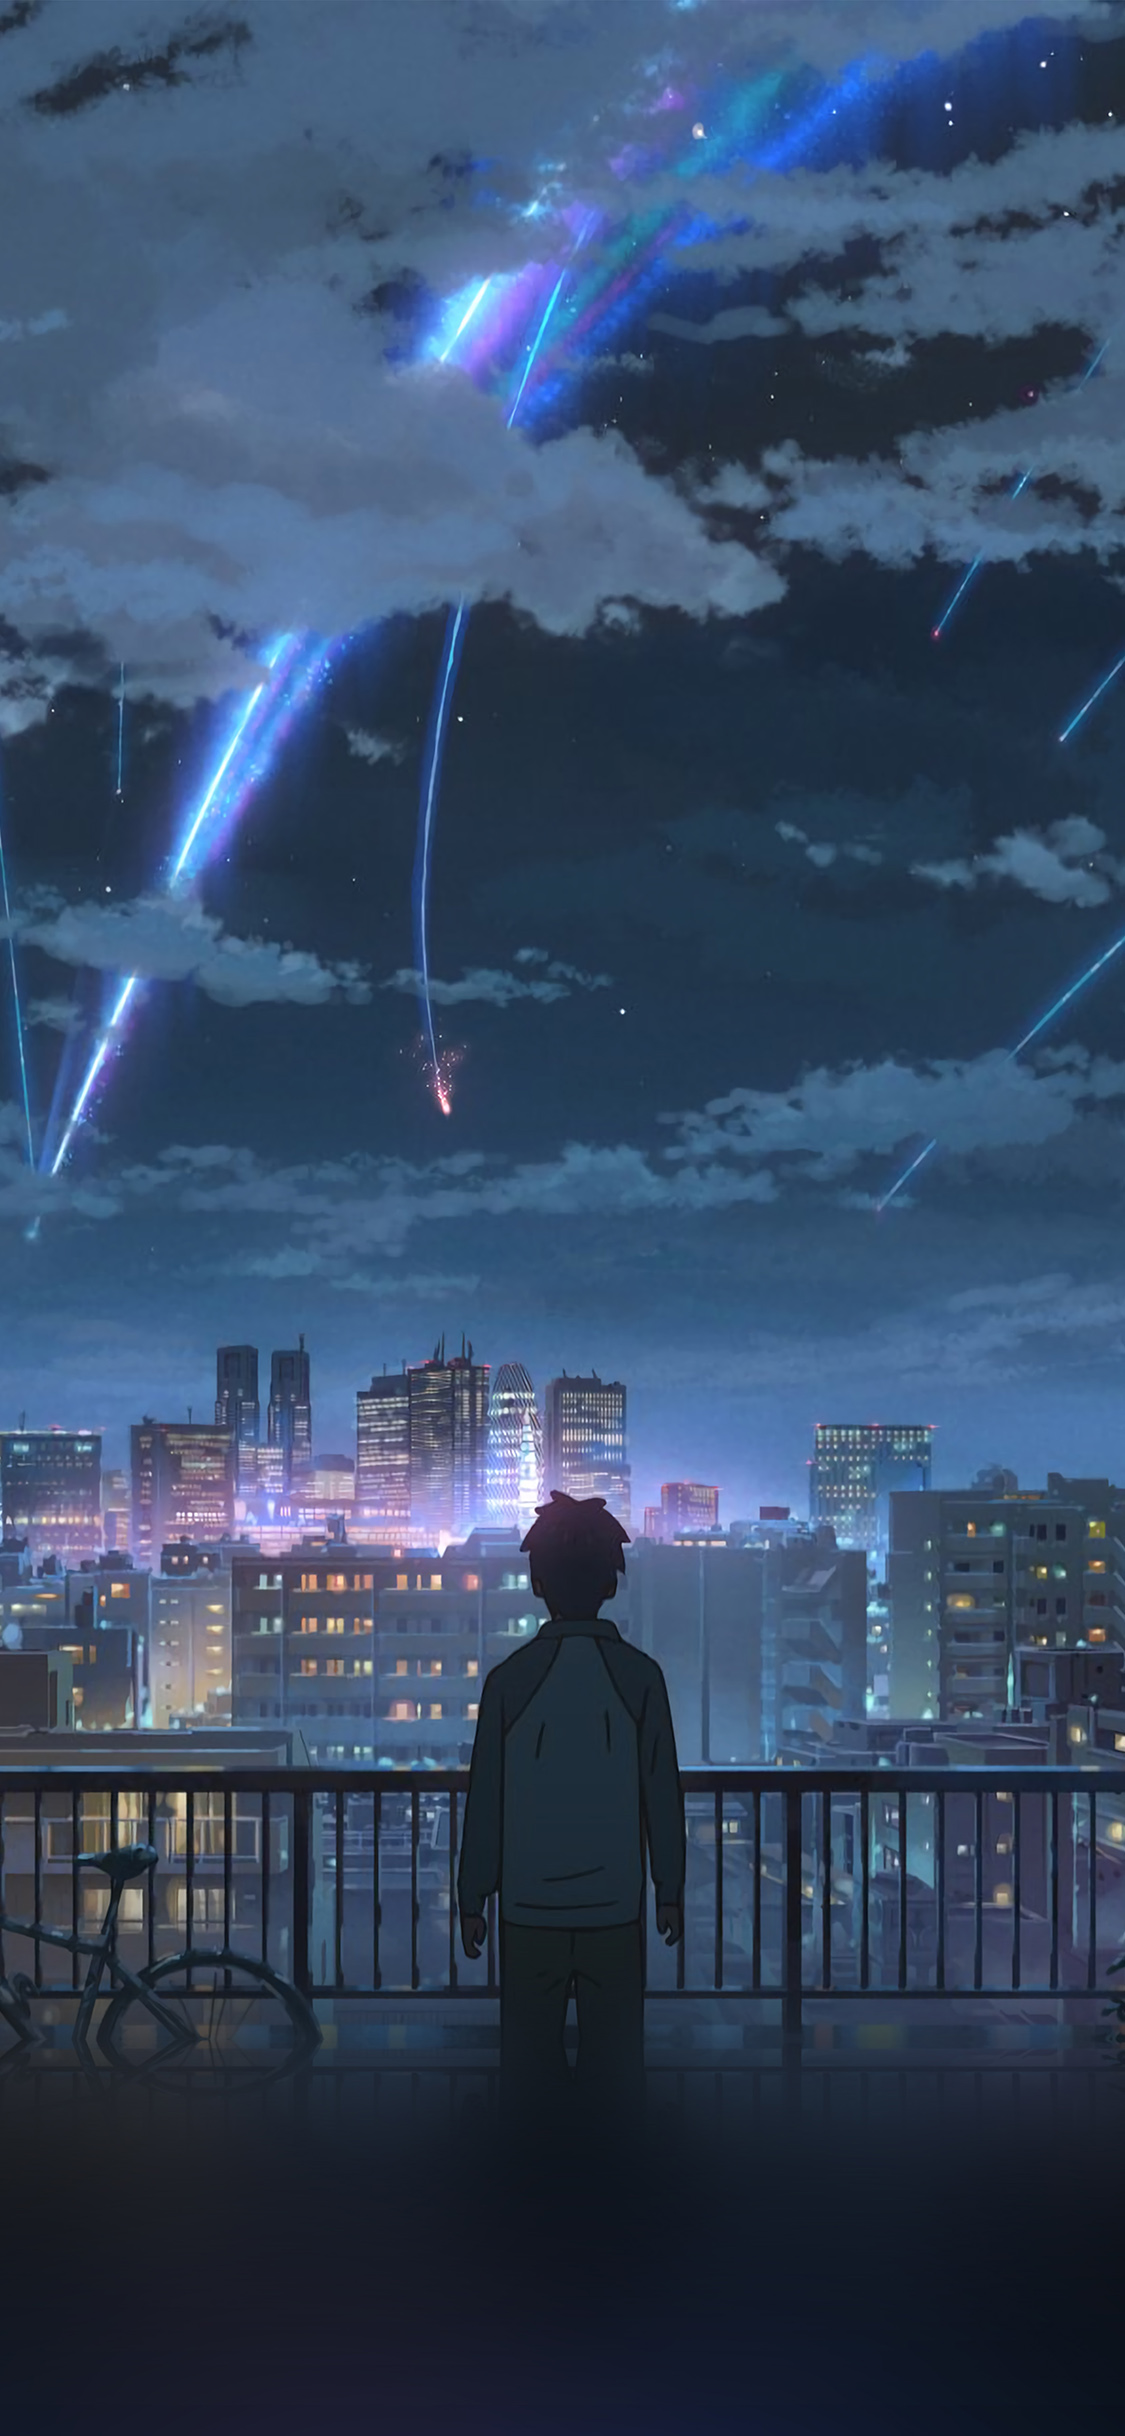 Aw28 Yourname Night Anime Sky Illustration Art Wallpaper